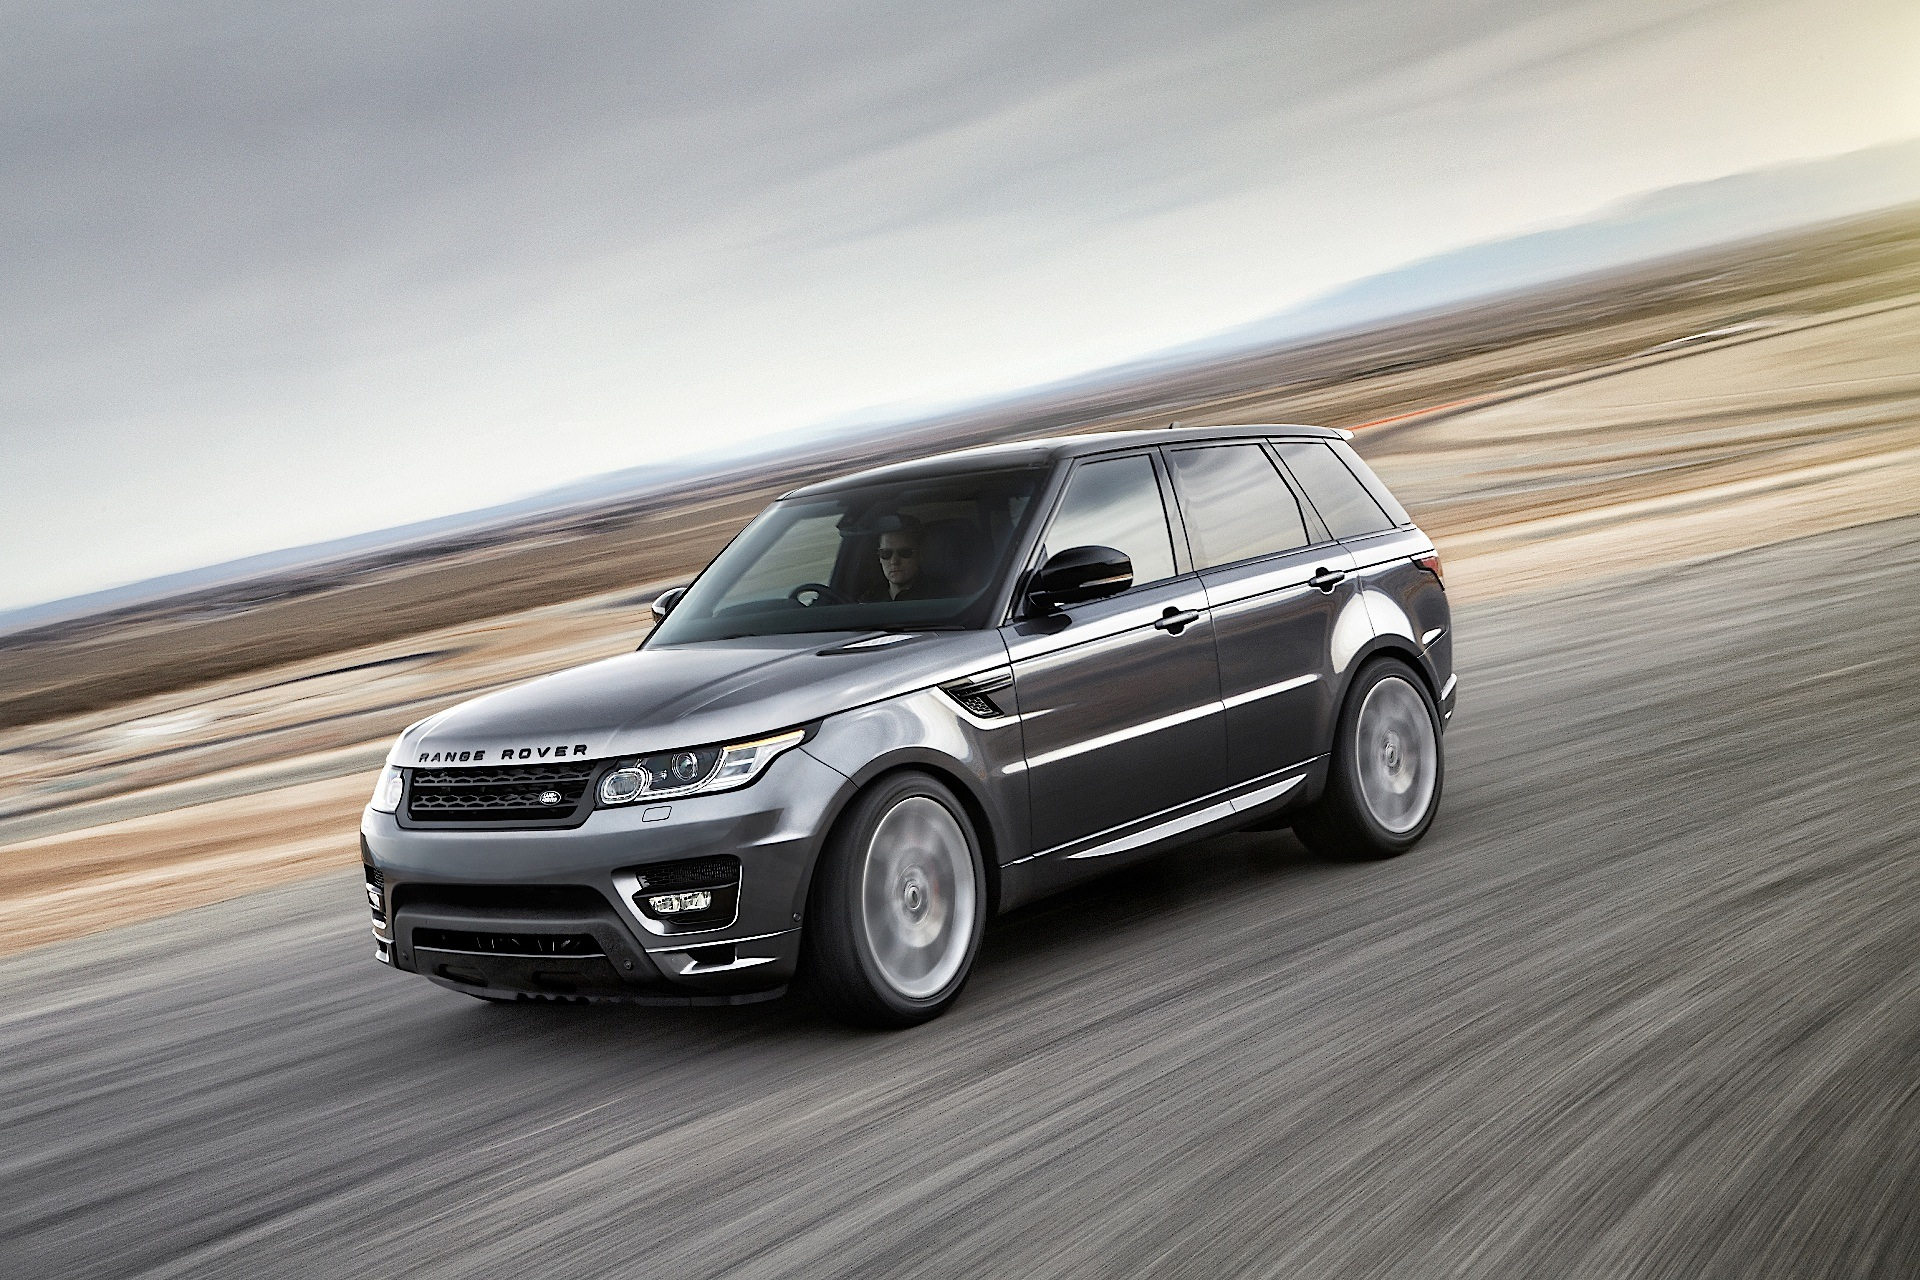 land rover range rover sport 2013 2014 2015 2016 2017 autoevolution. Black Bedroom Furniture Sets. Home Design Ideas